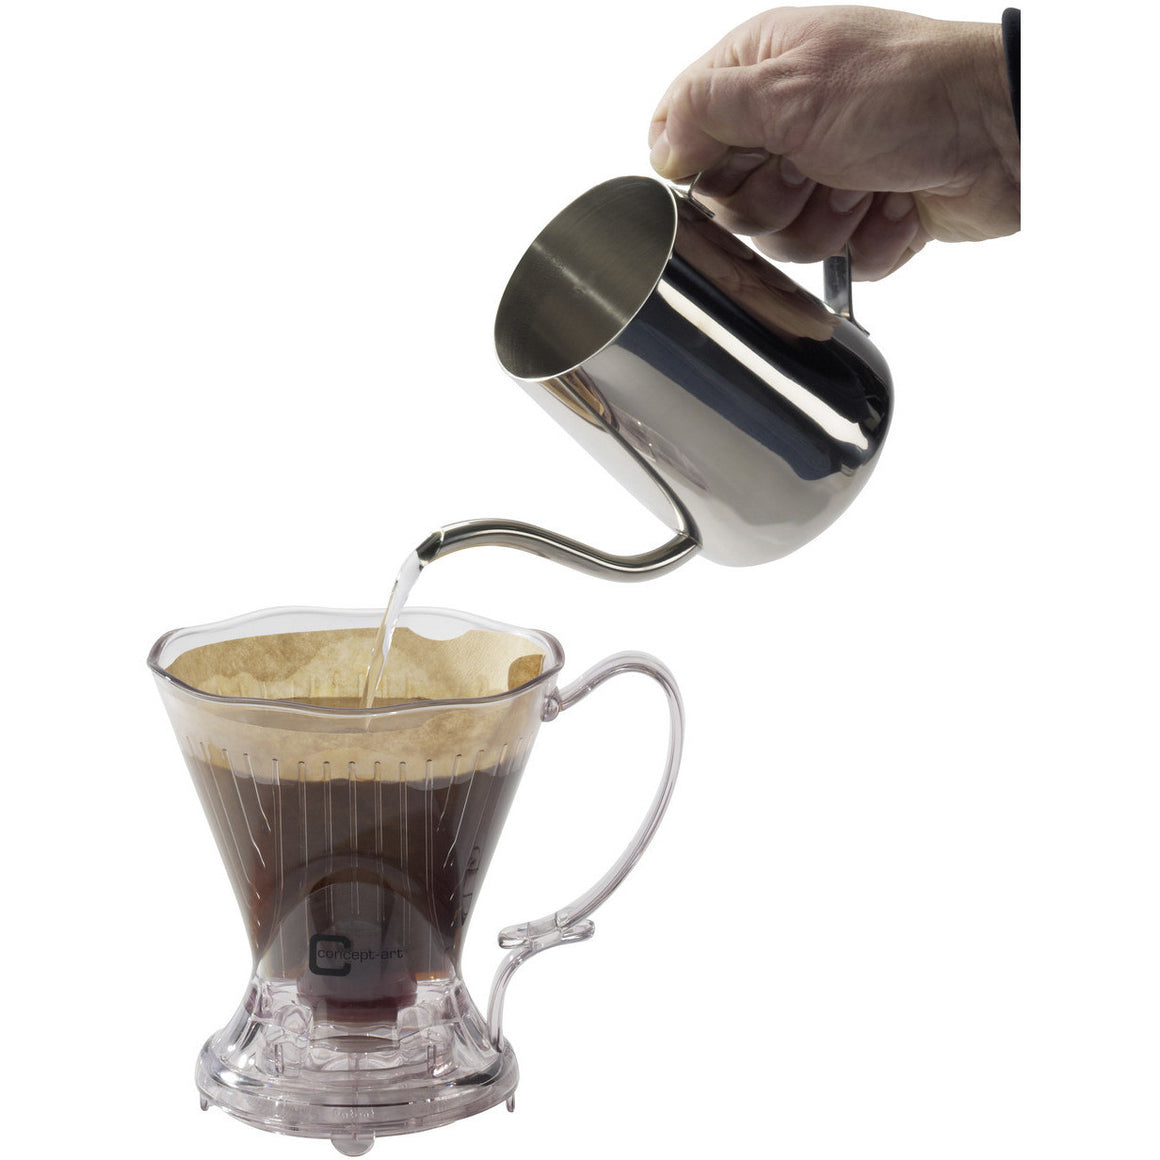 Coffee Drip Kettle by Joe Frex - My Espresso Shop